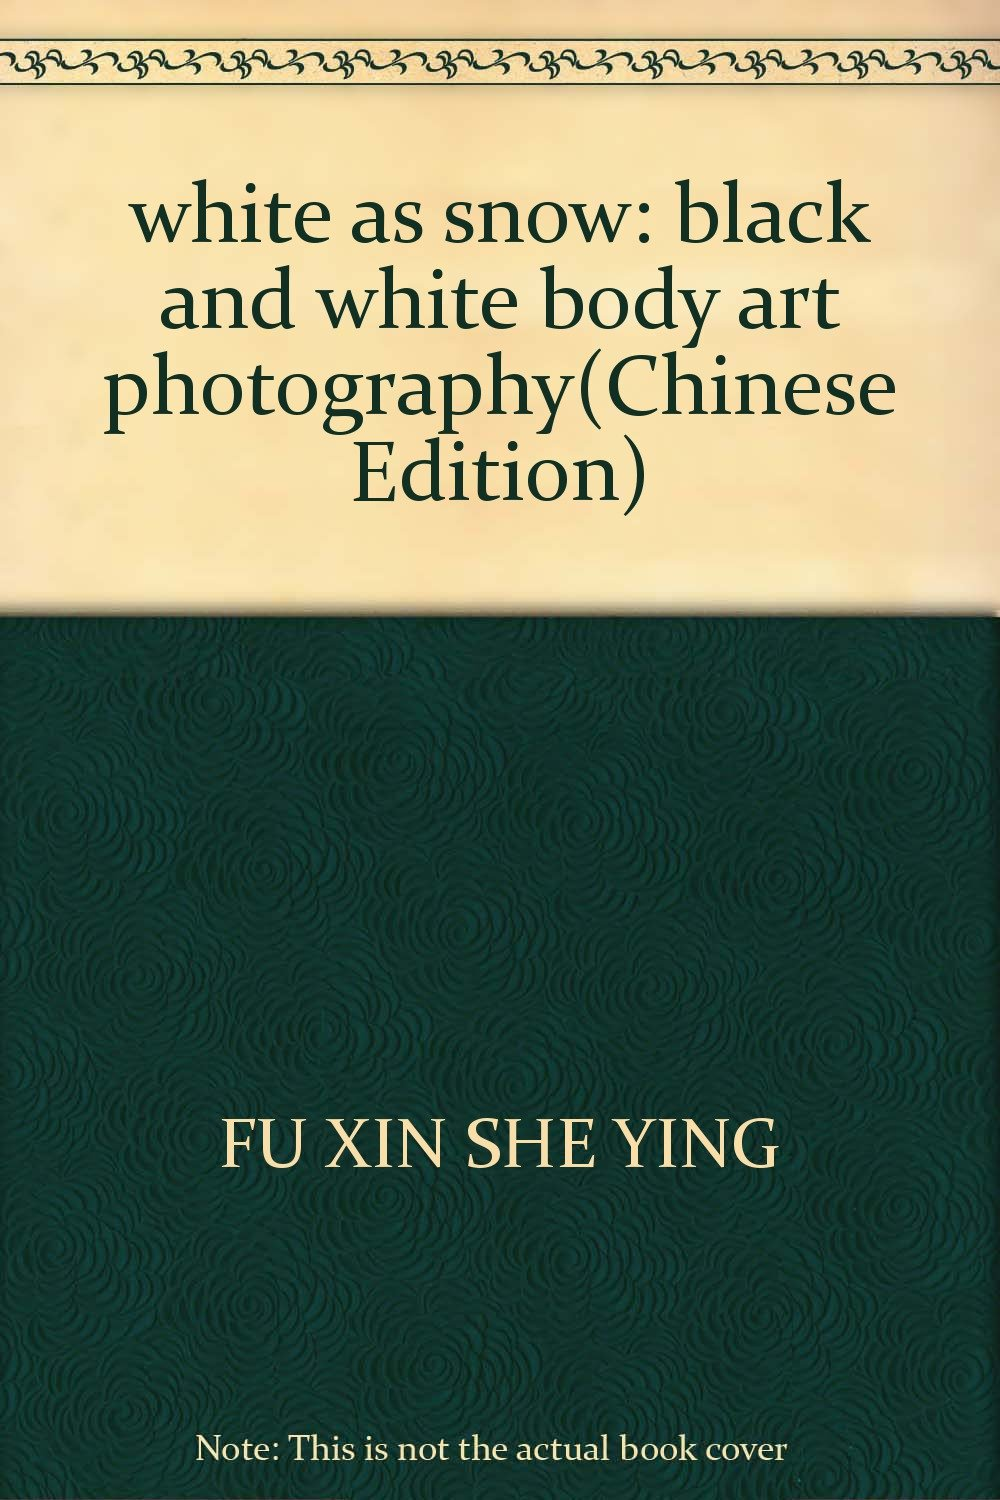 white as snow: black and white body art photography(Chinese Edition)